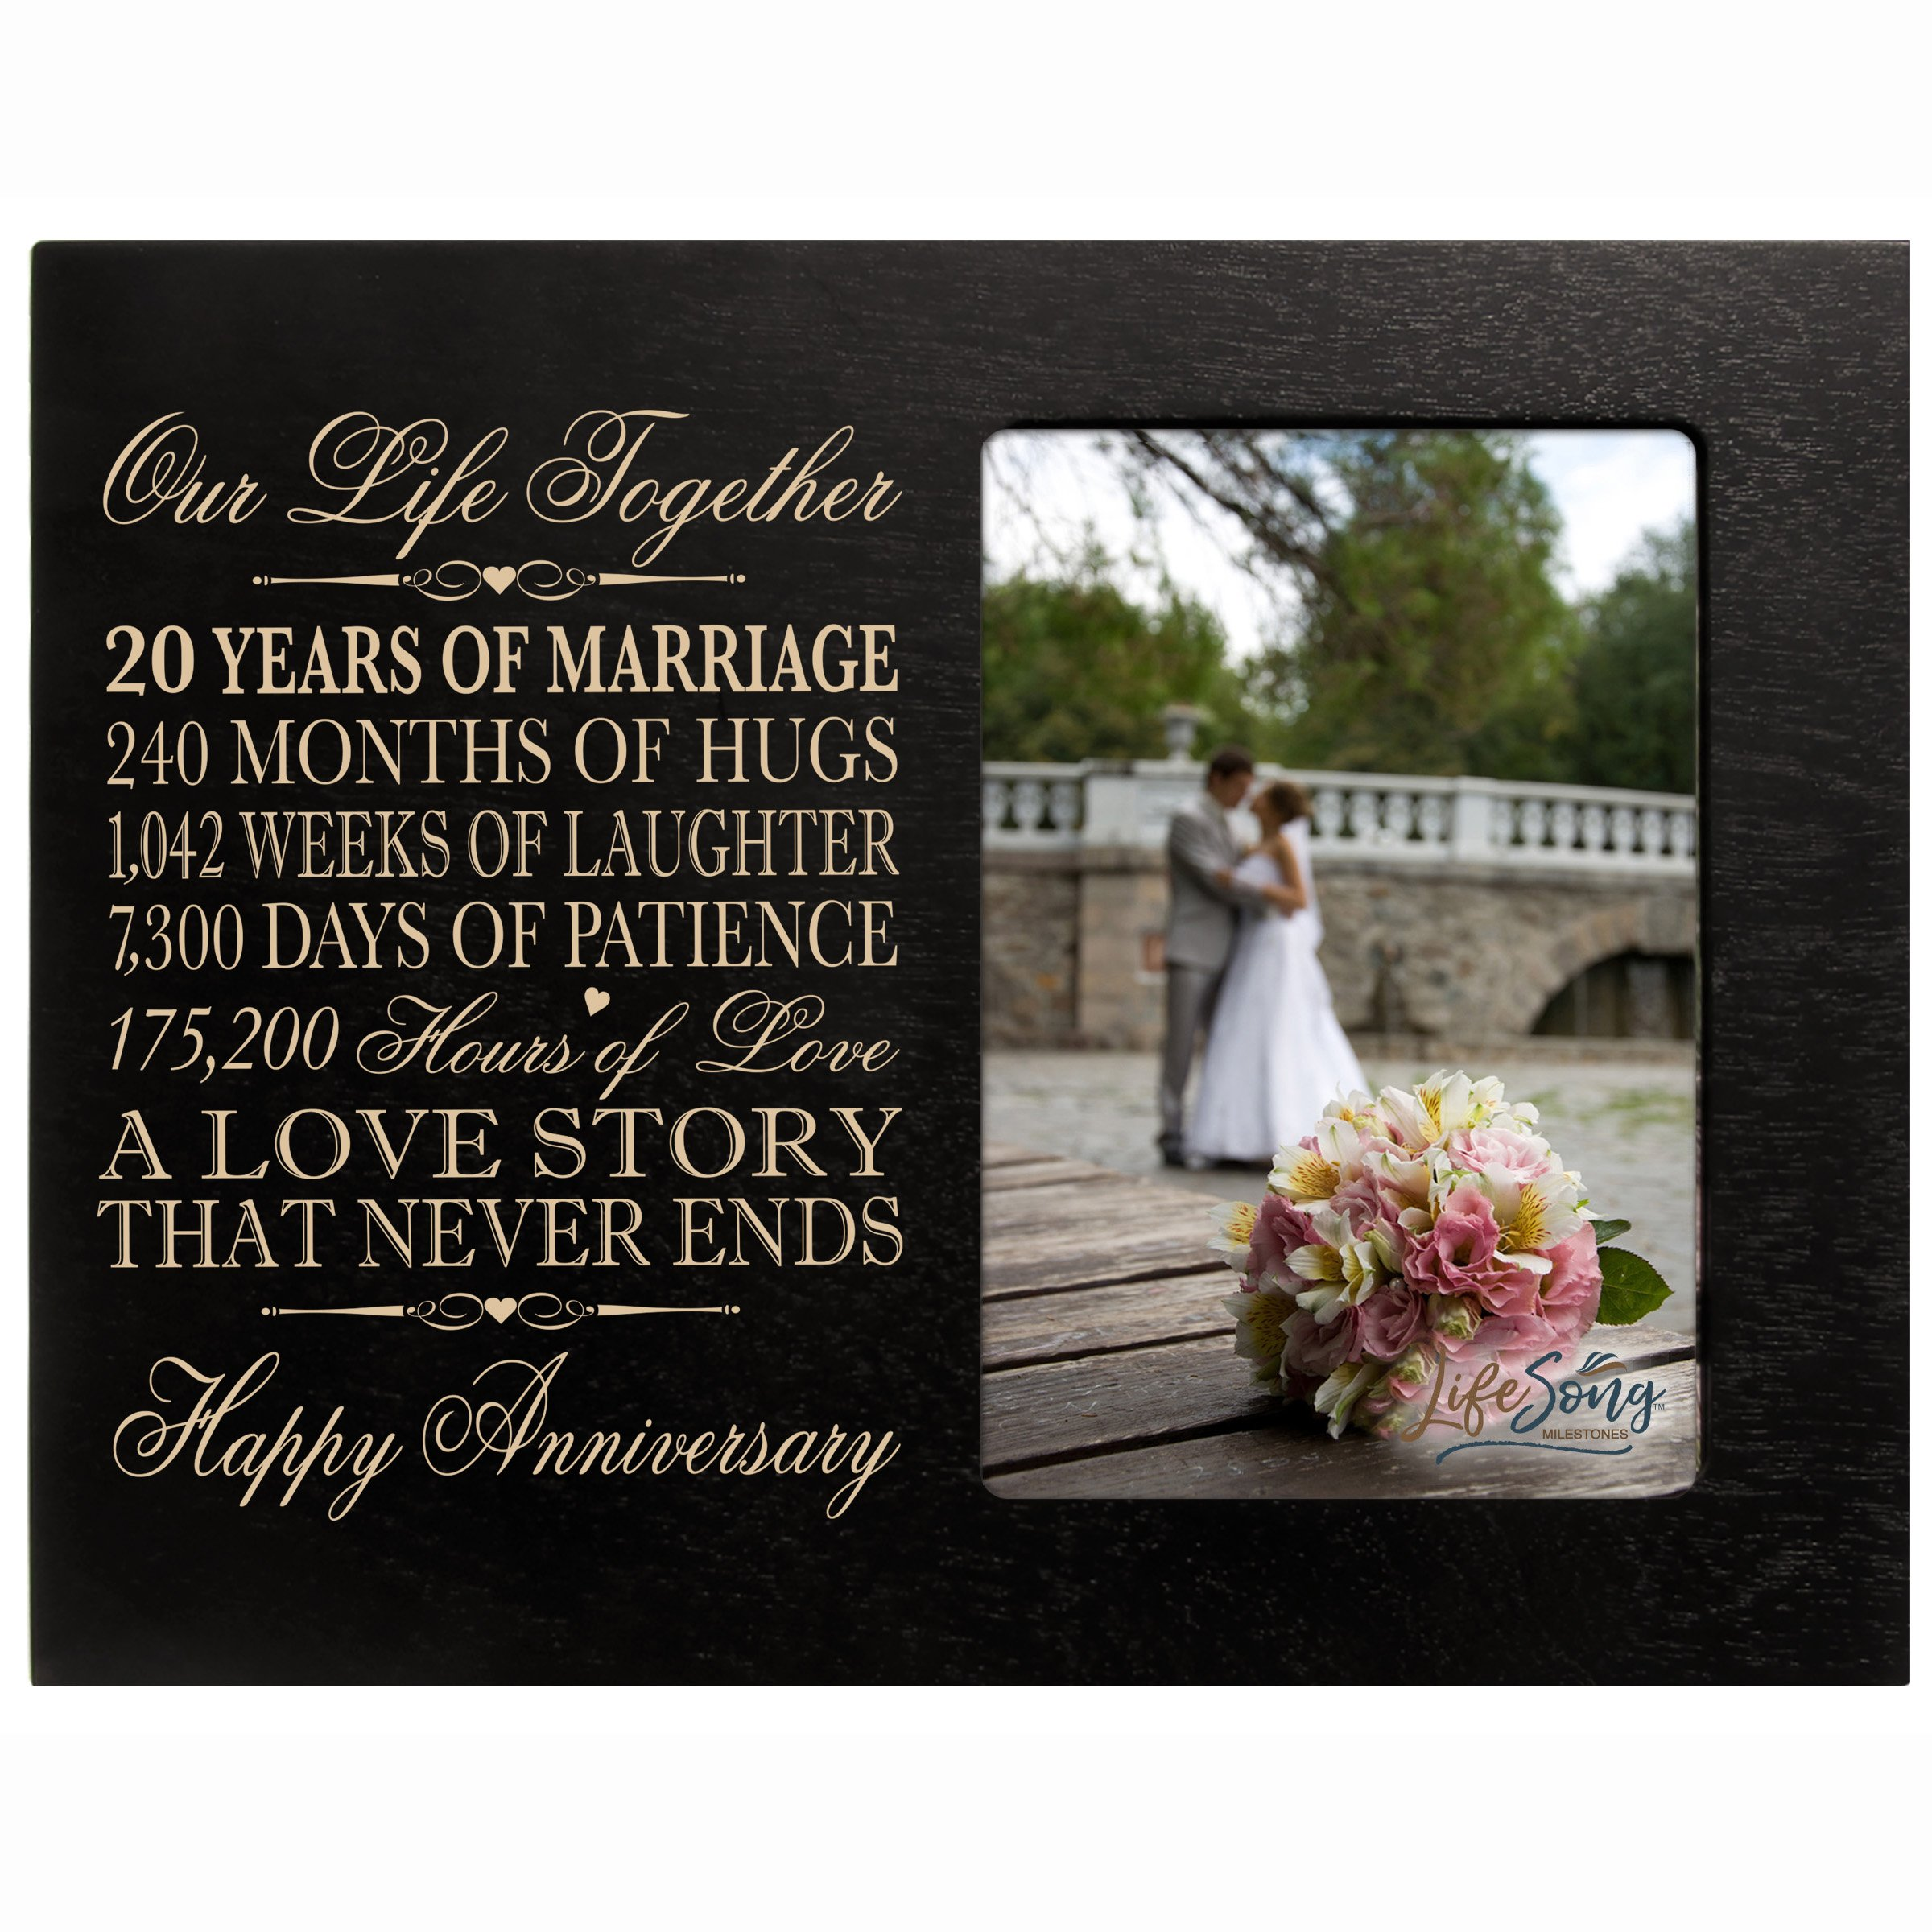 LifeSong Milestones Twenty Year for her him Couple Custom Engraved 20th Year Wedding Anniversary Celebration Gift Frame Holds 4x6 Photo Frame Size 10'' w x 8'' h x 1/2'' (Black)